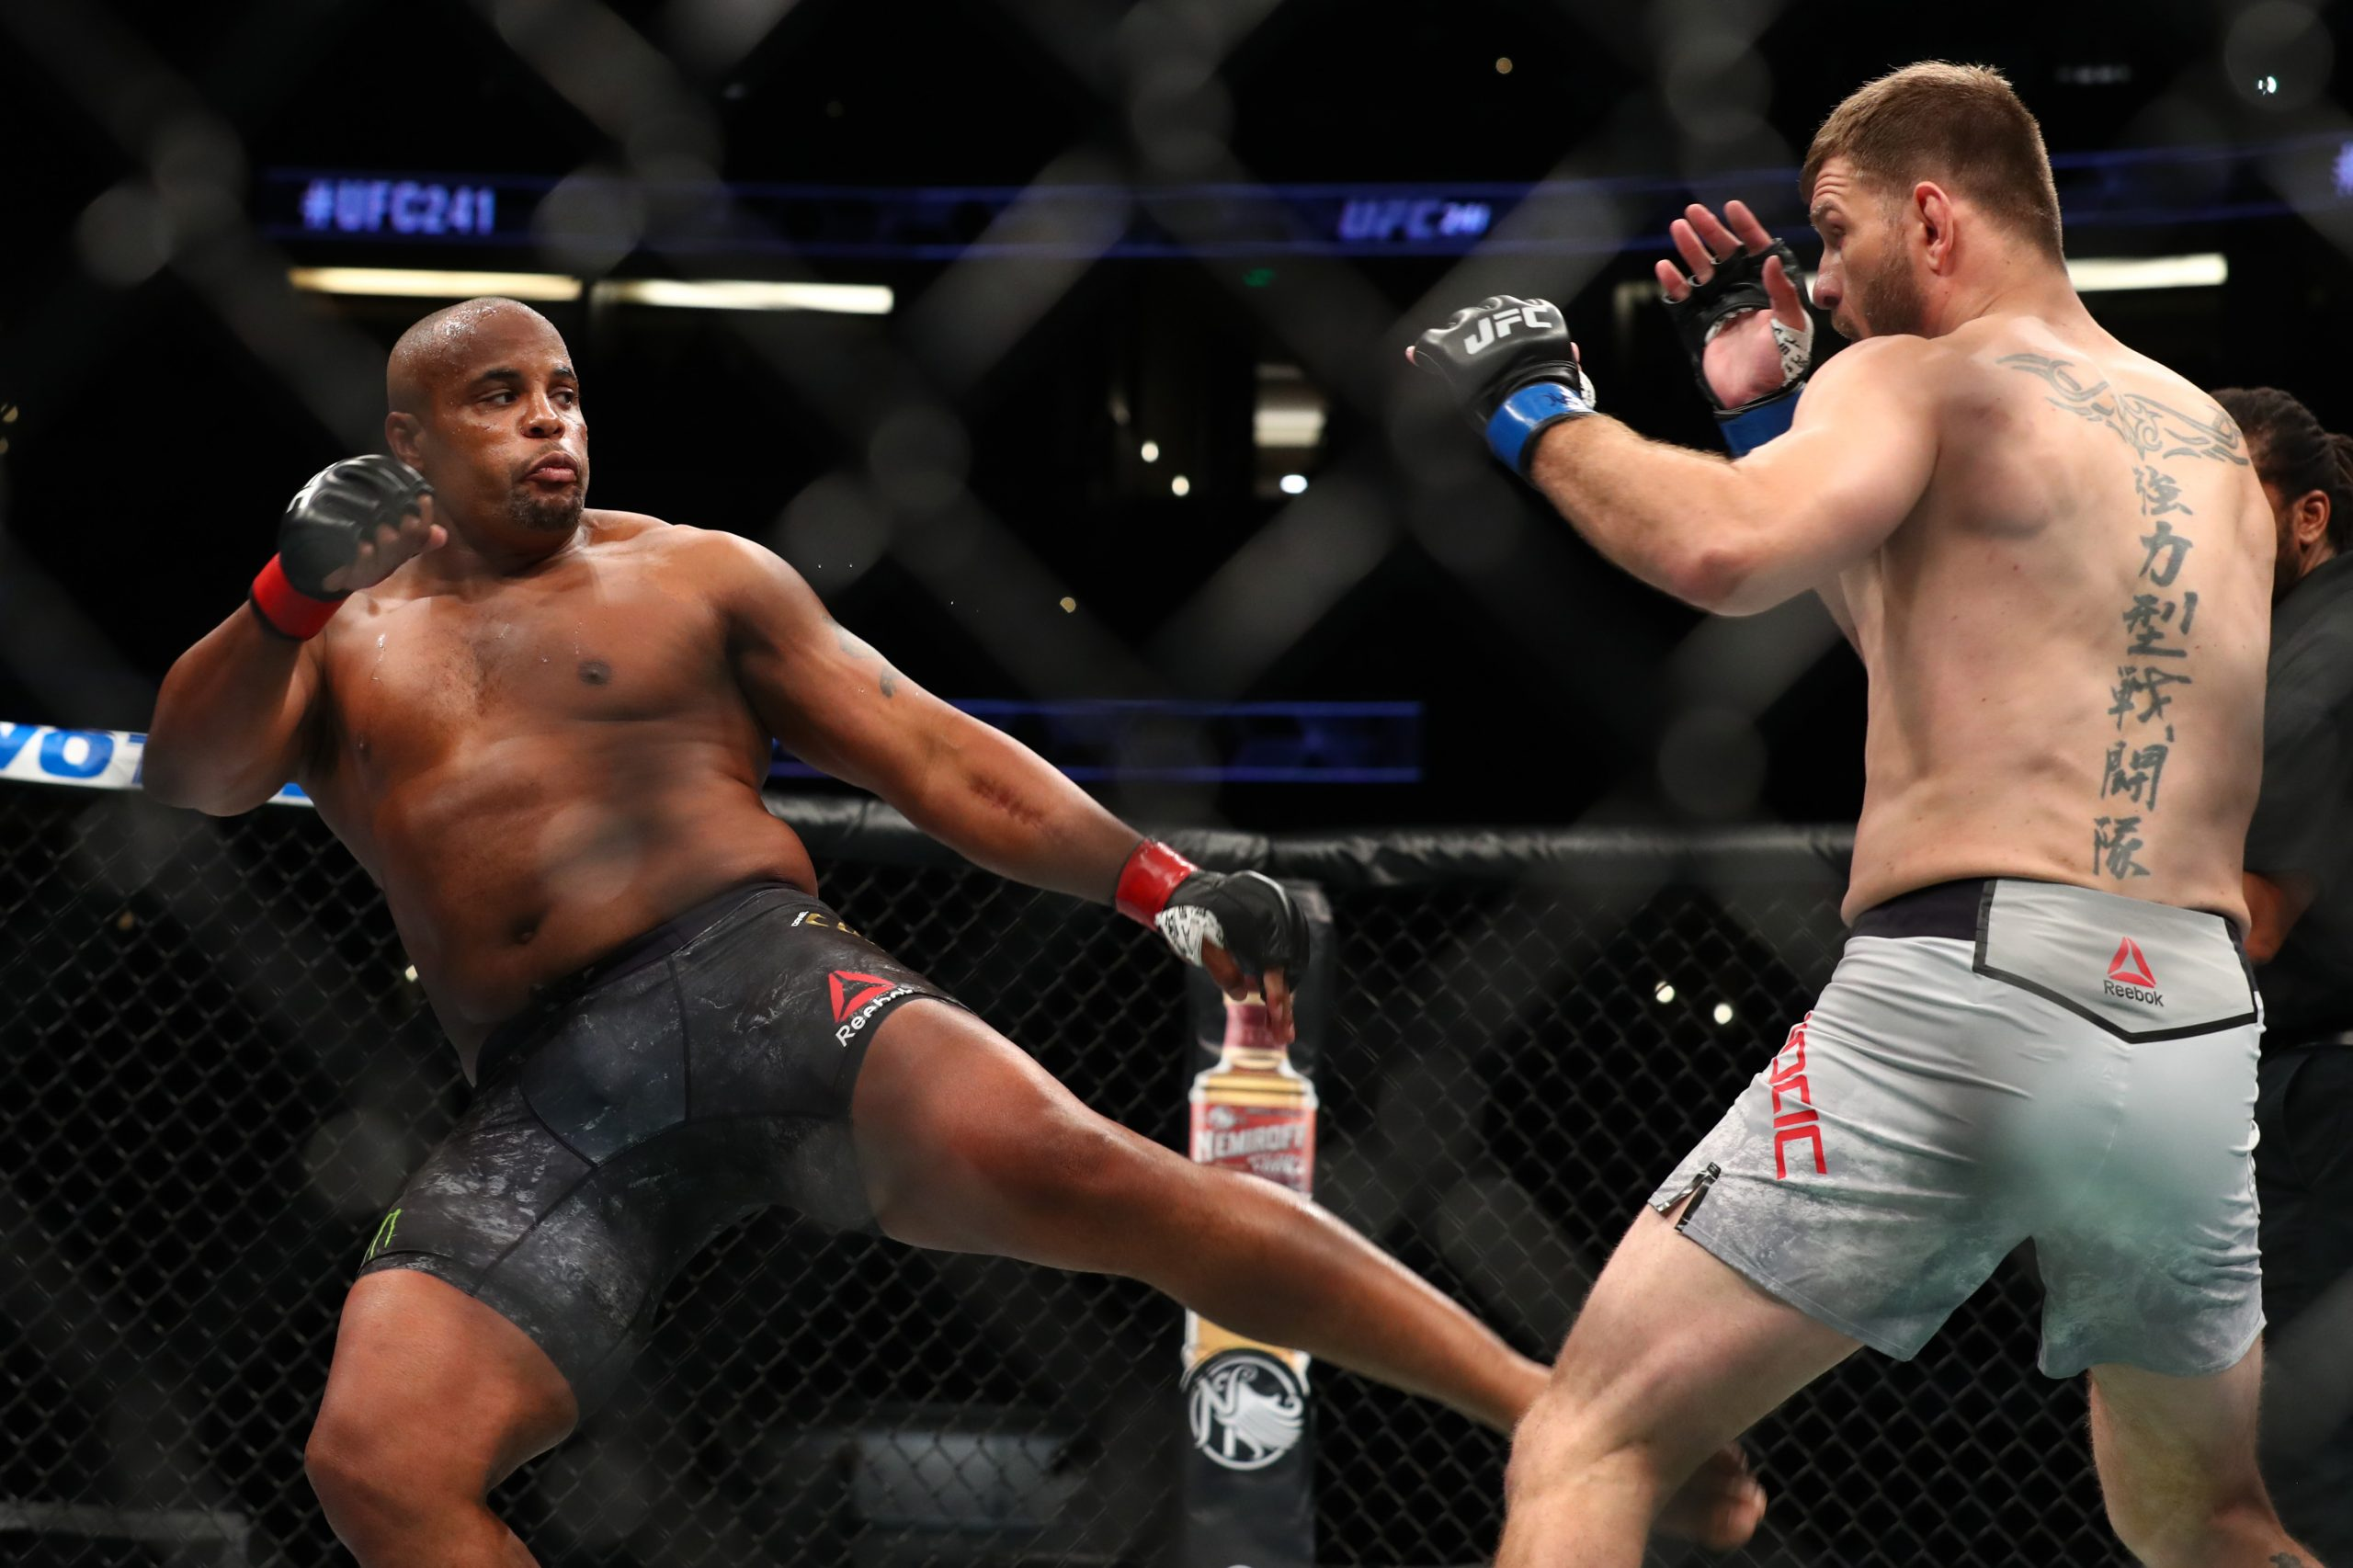 Daniel Cormier vs Stipe Miocic 3 could happen in the UFC